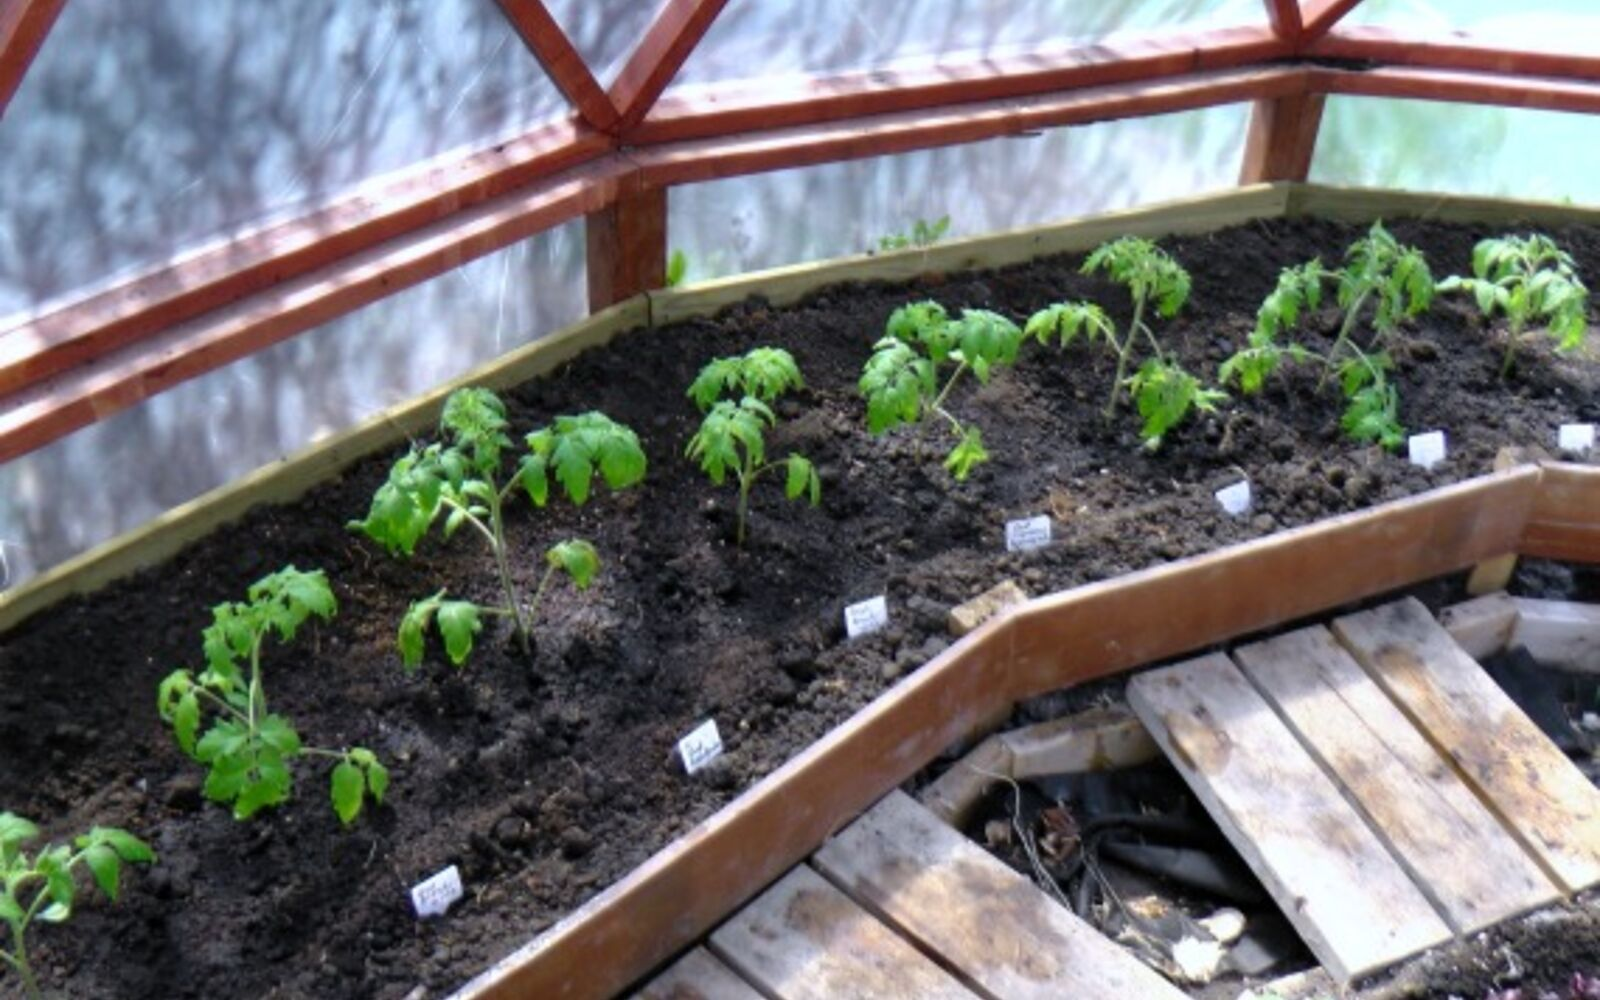 s the easiest ways to grow a bumper crop of tomatoes, Plant them in a greenhouse